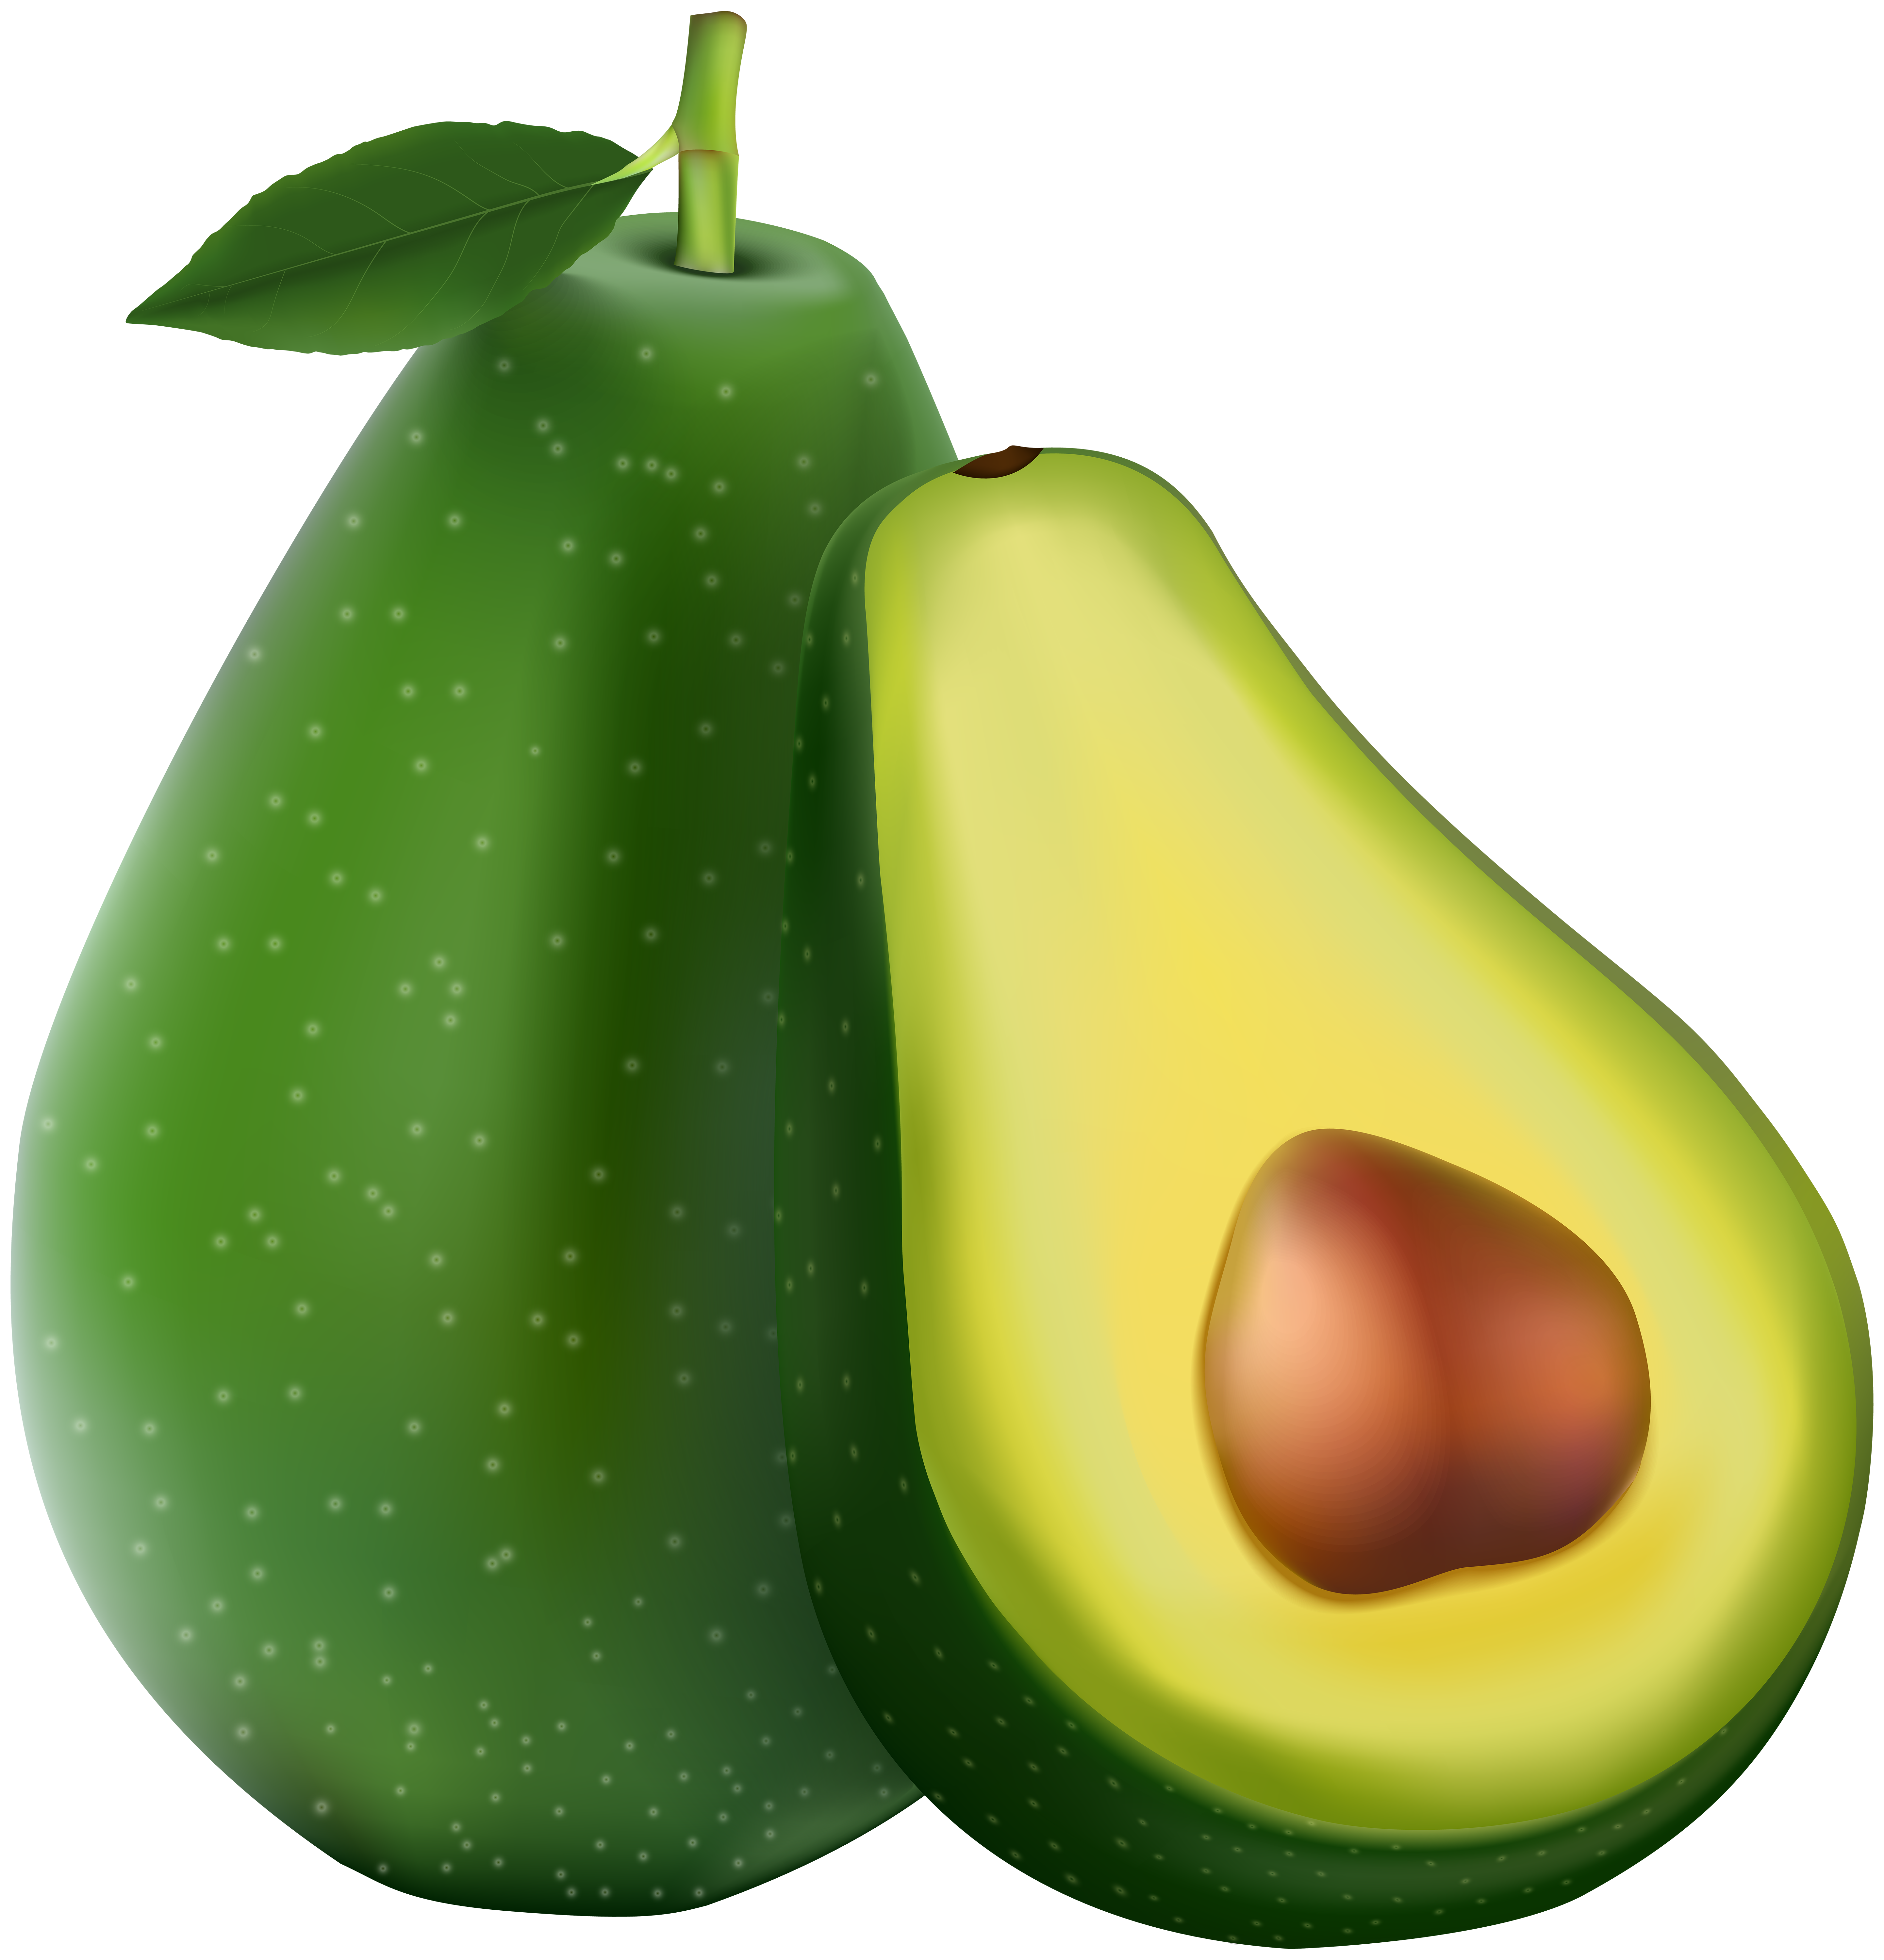 Transparent image gallery yopriceville. Avocado clipart png clip freeuse